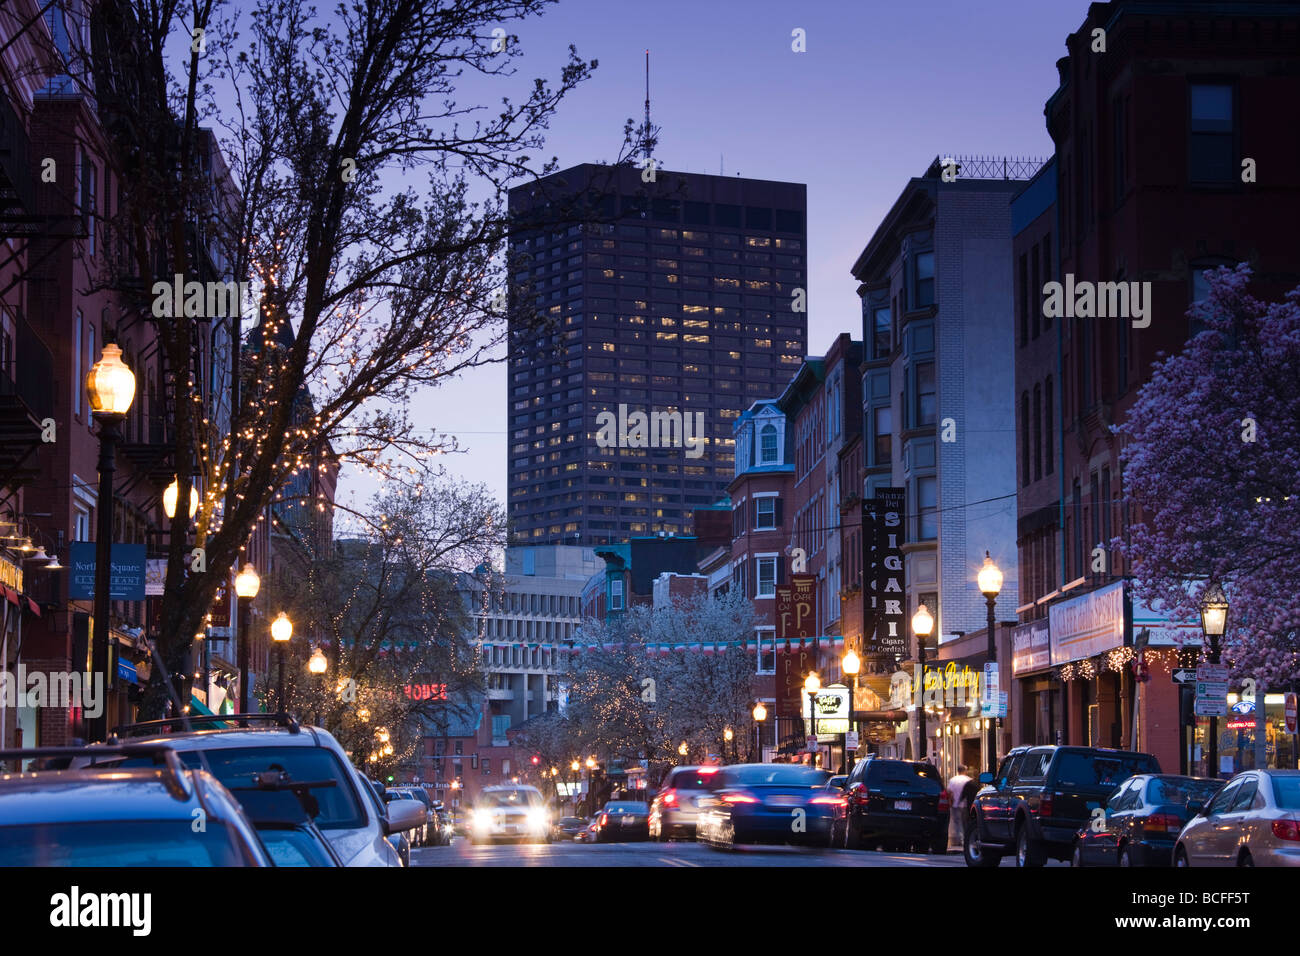 USA, Massachusetts, Boston, North End, Little Italy, Hanover Street - Stock Image